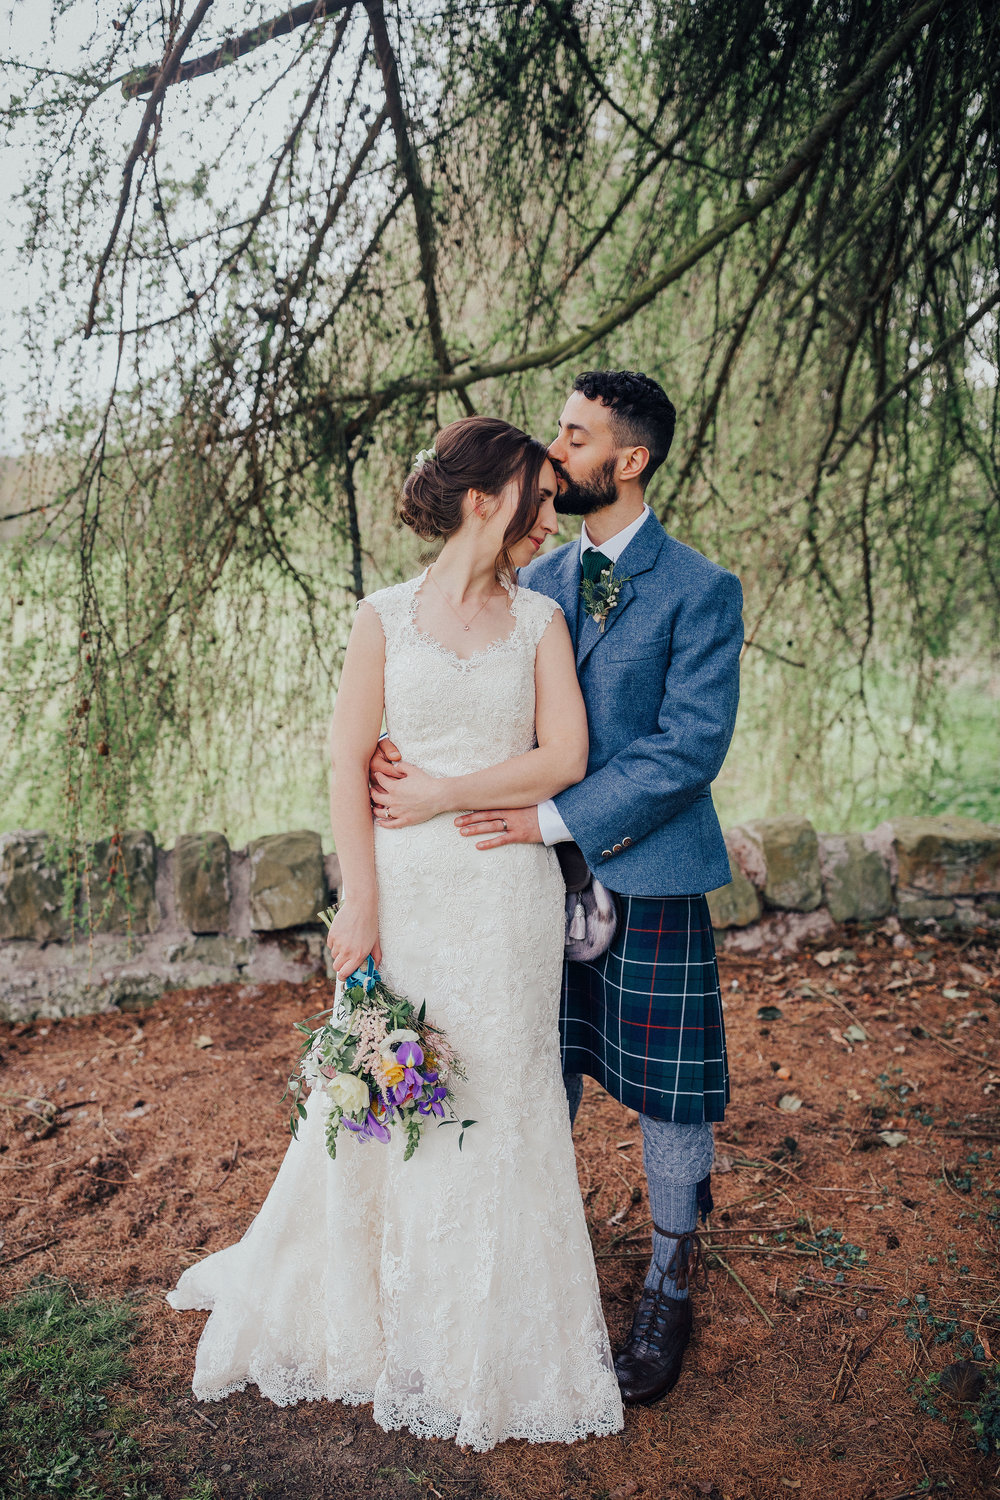 WINDMILL_BARN_DUNFERMLINE_WEDDING_PJ_PHILLIPS_PHOTOGRAPHY_110.jpg